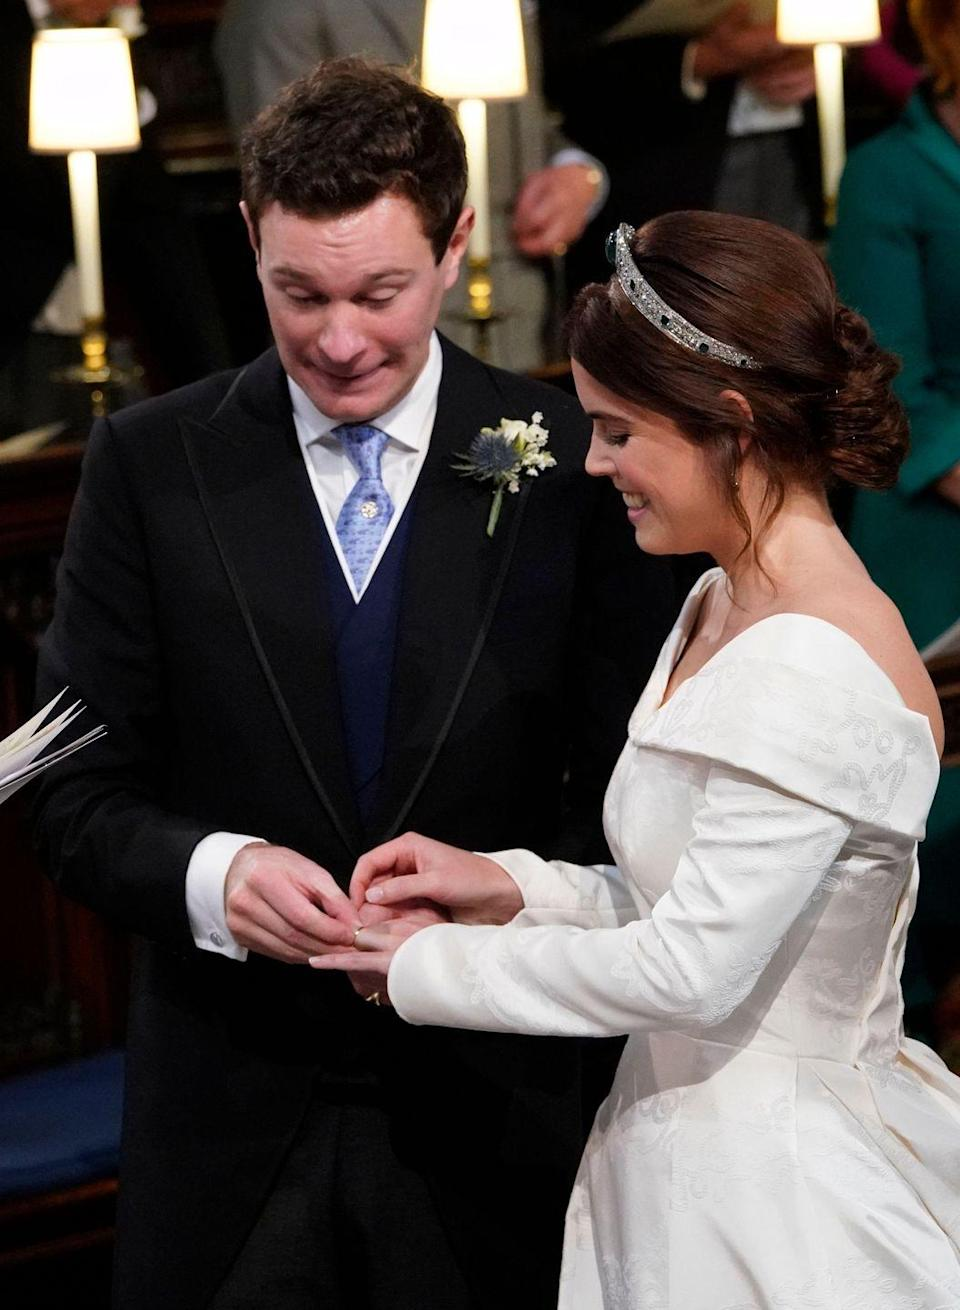 <p>Princess Eugenie announced her engagement to Jack Brooksbank in January 2018. The couple tied the knot in October 2018 with a big royal wedding in St. George's Chapel at Windsor Castle. </p>